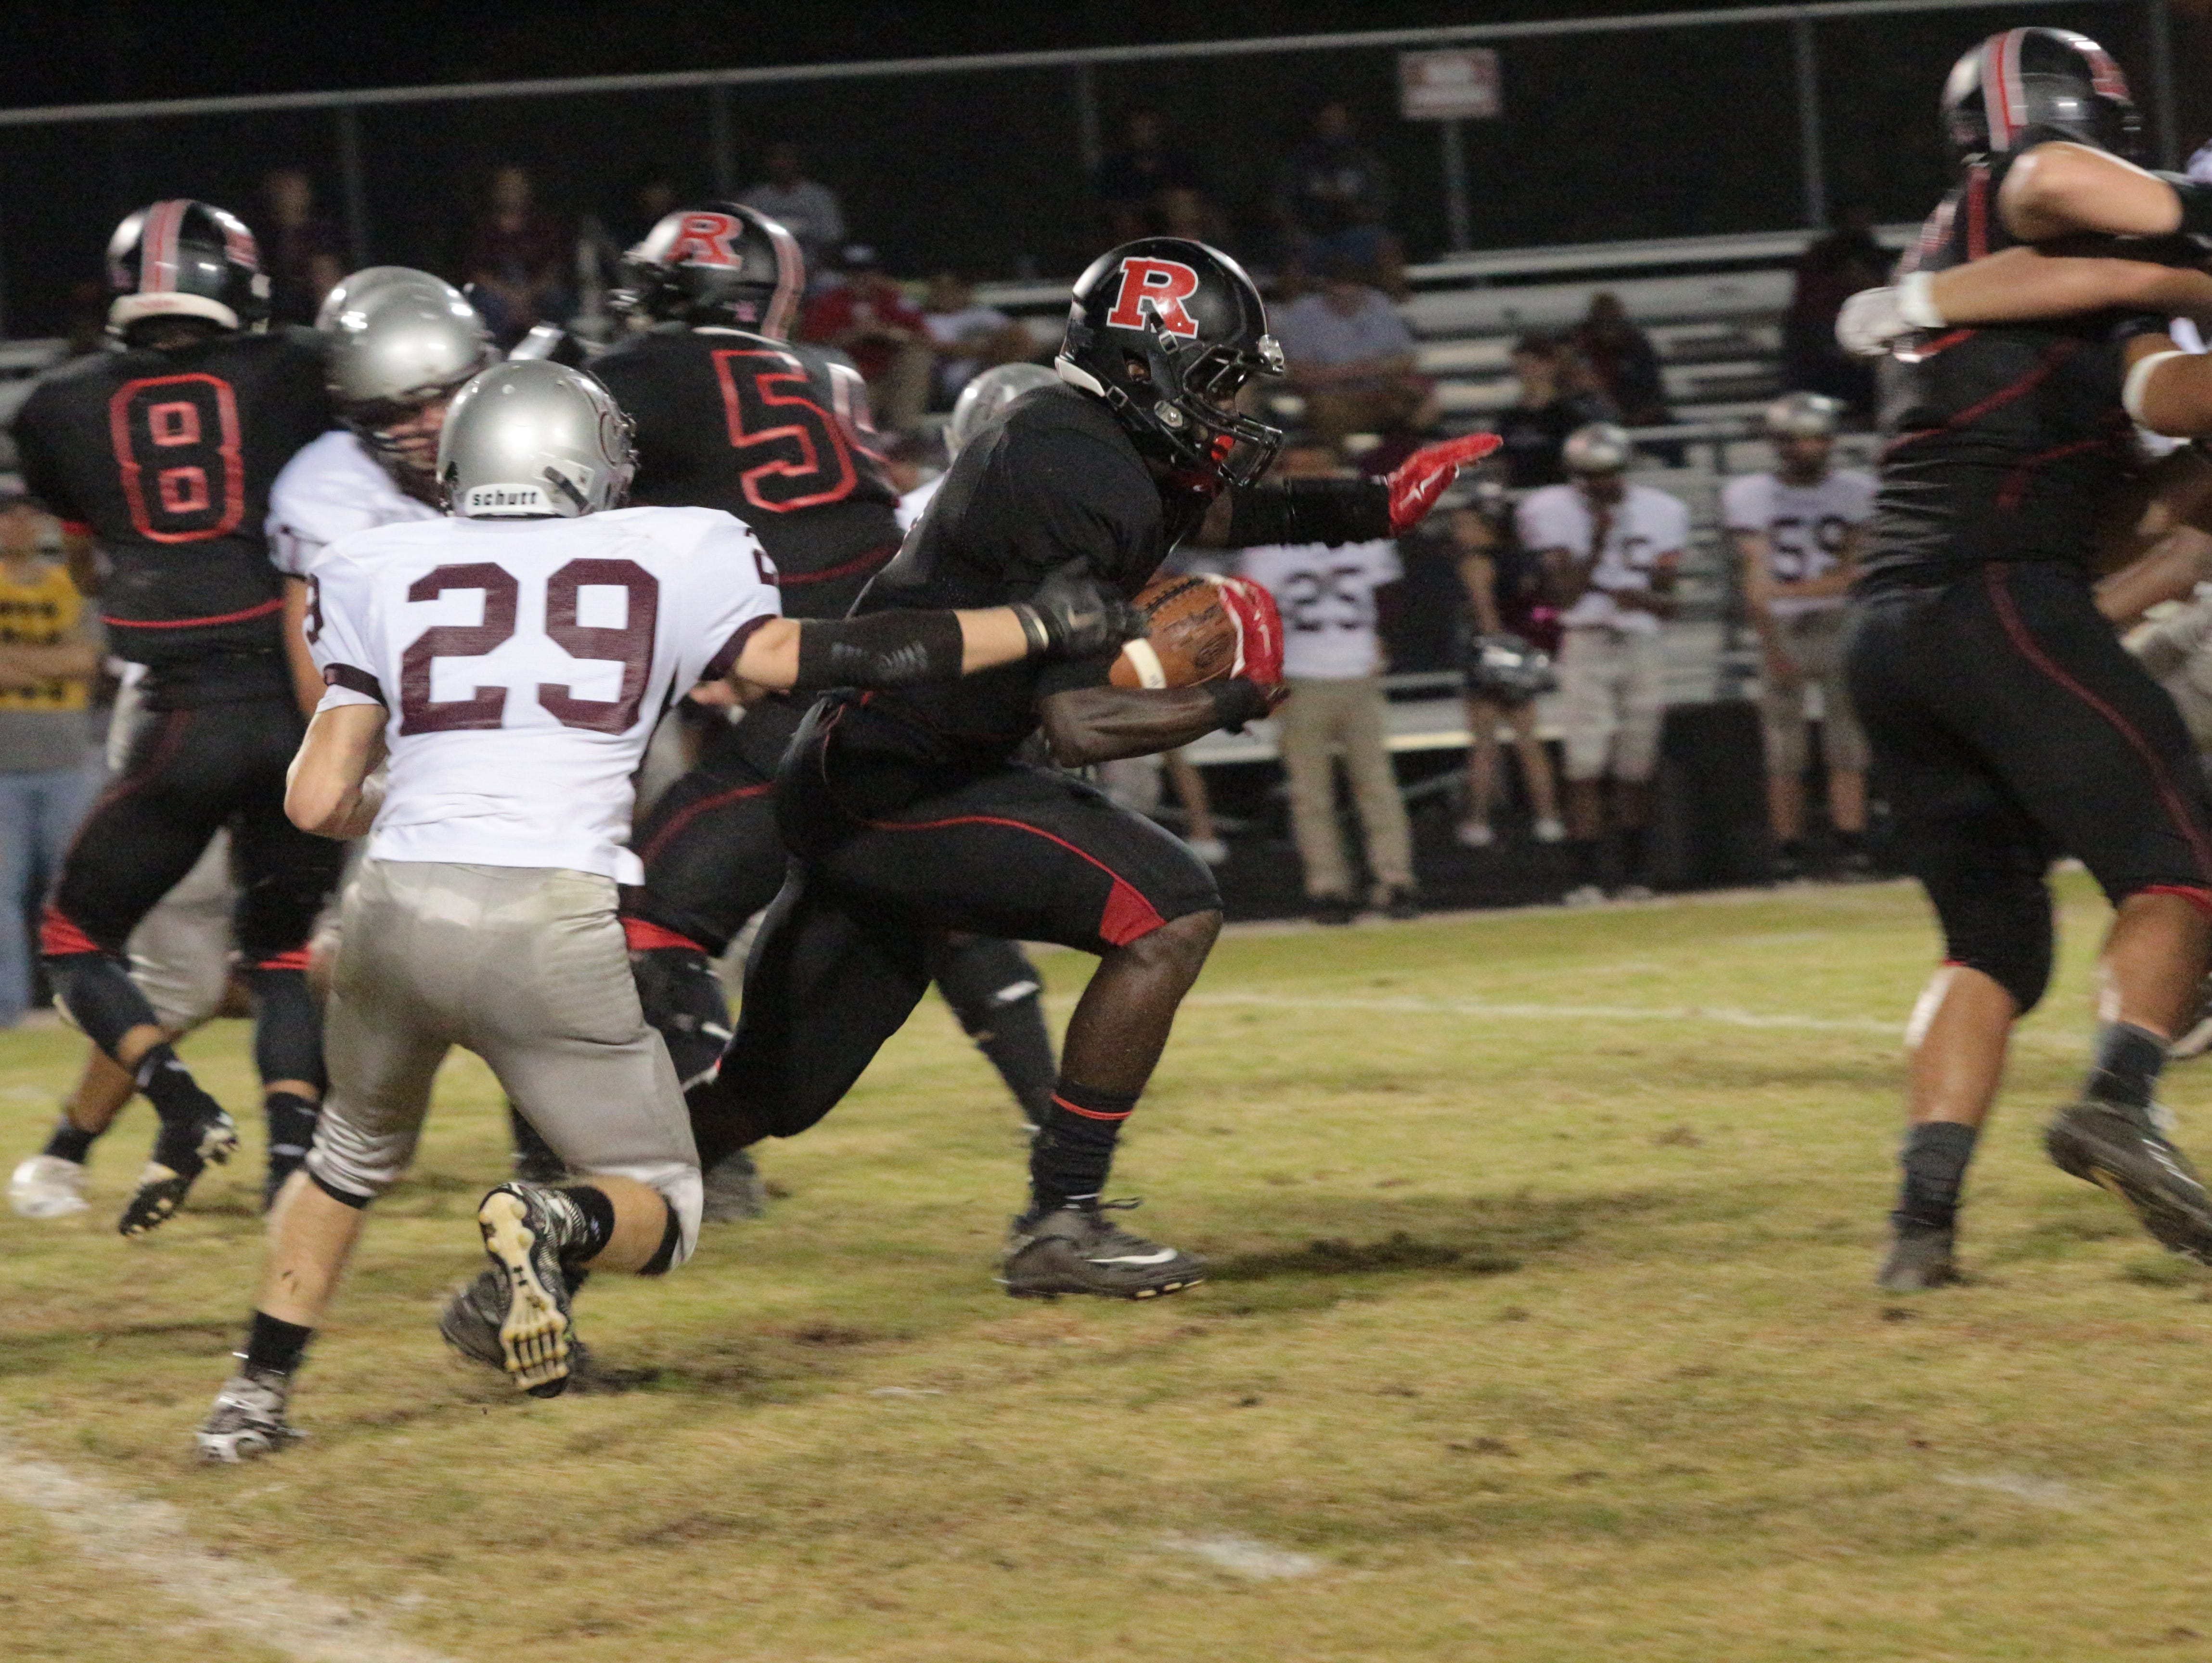 Rossview's KeyShawn McClendon runs for 13 yards on his way to a 131-yard, two TD rushing night as the Hawks dropped West Creek 41-0 Thursday at Rossview High School